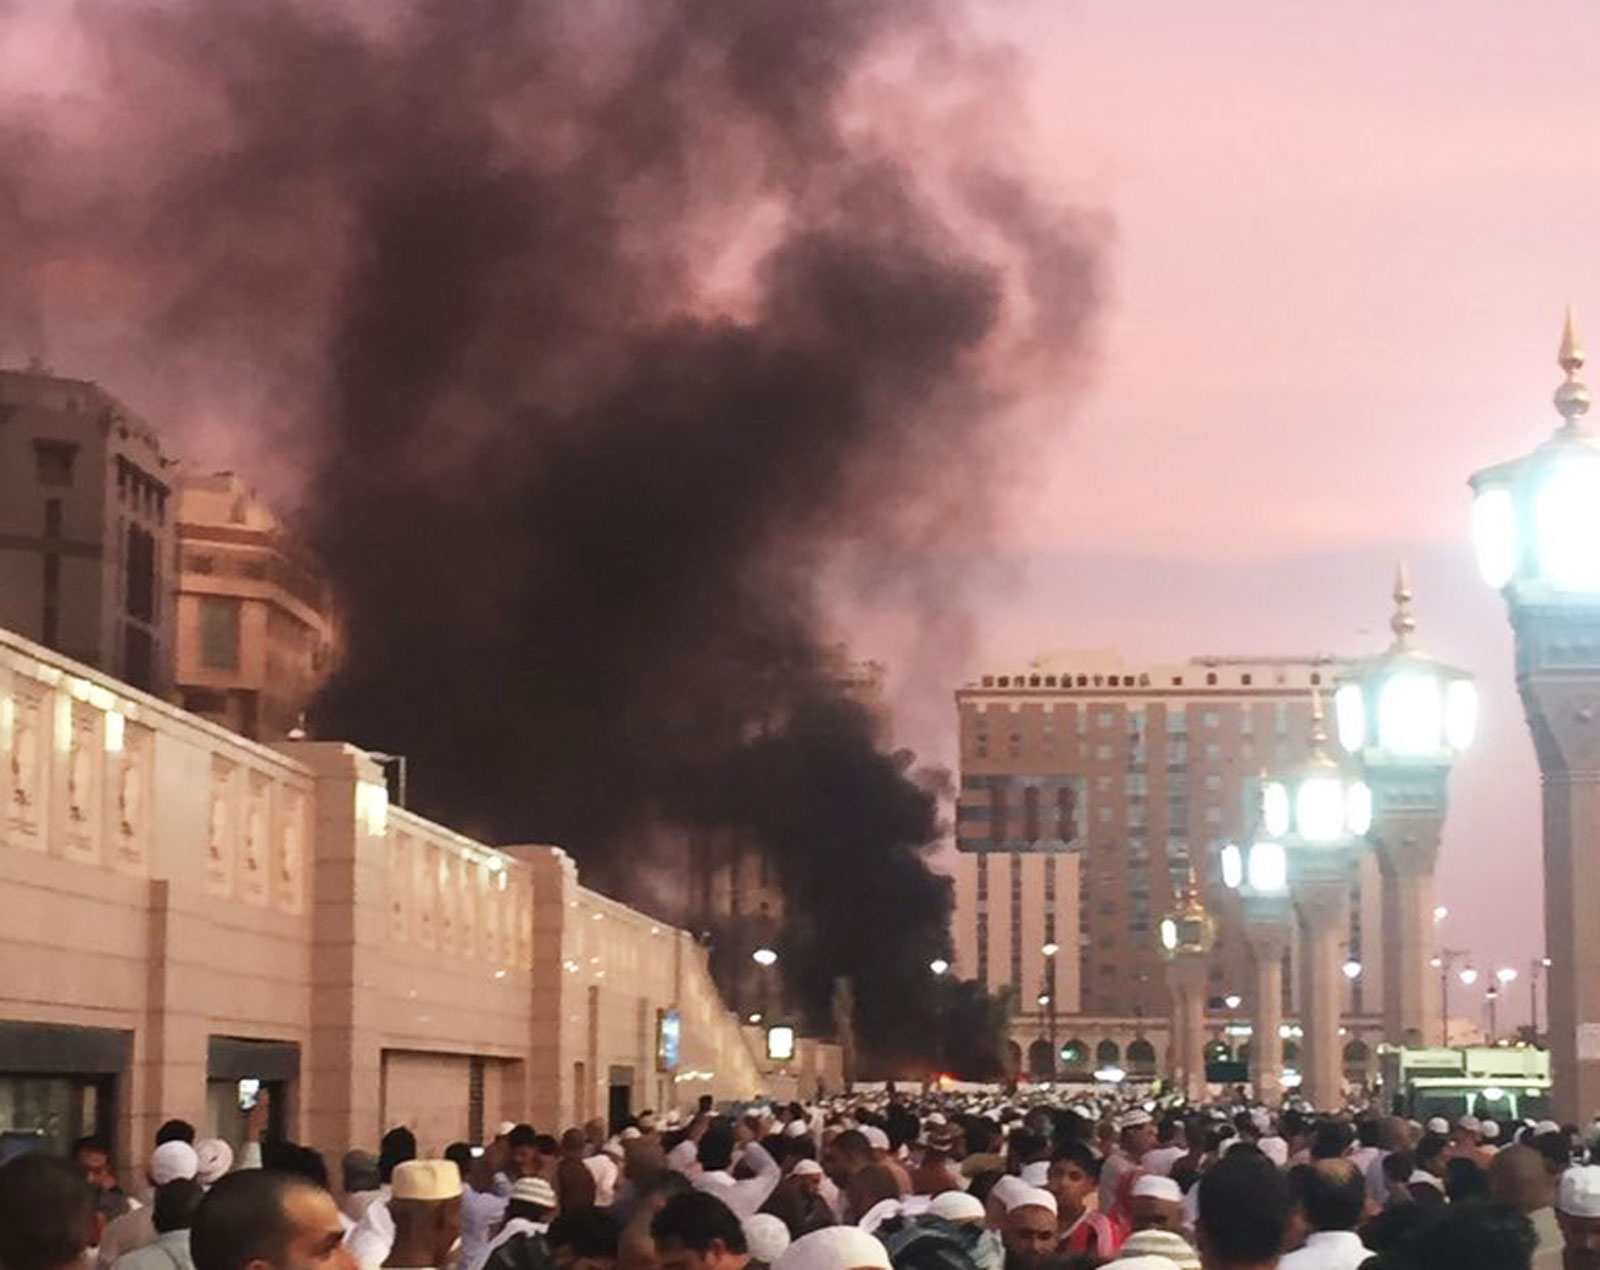 Smoke from a bomb attack near the Mosque of the Prophet, Medina, Saudi Arabia, July 4, 2016